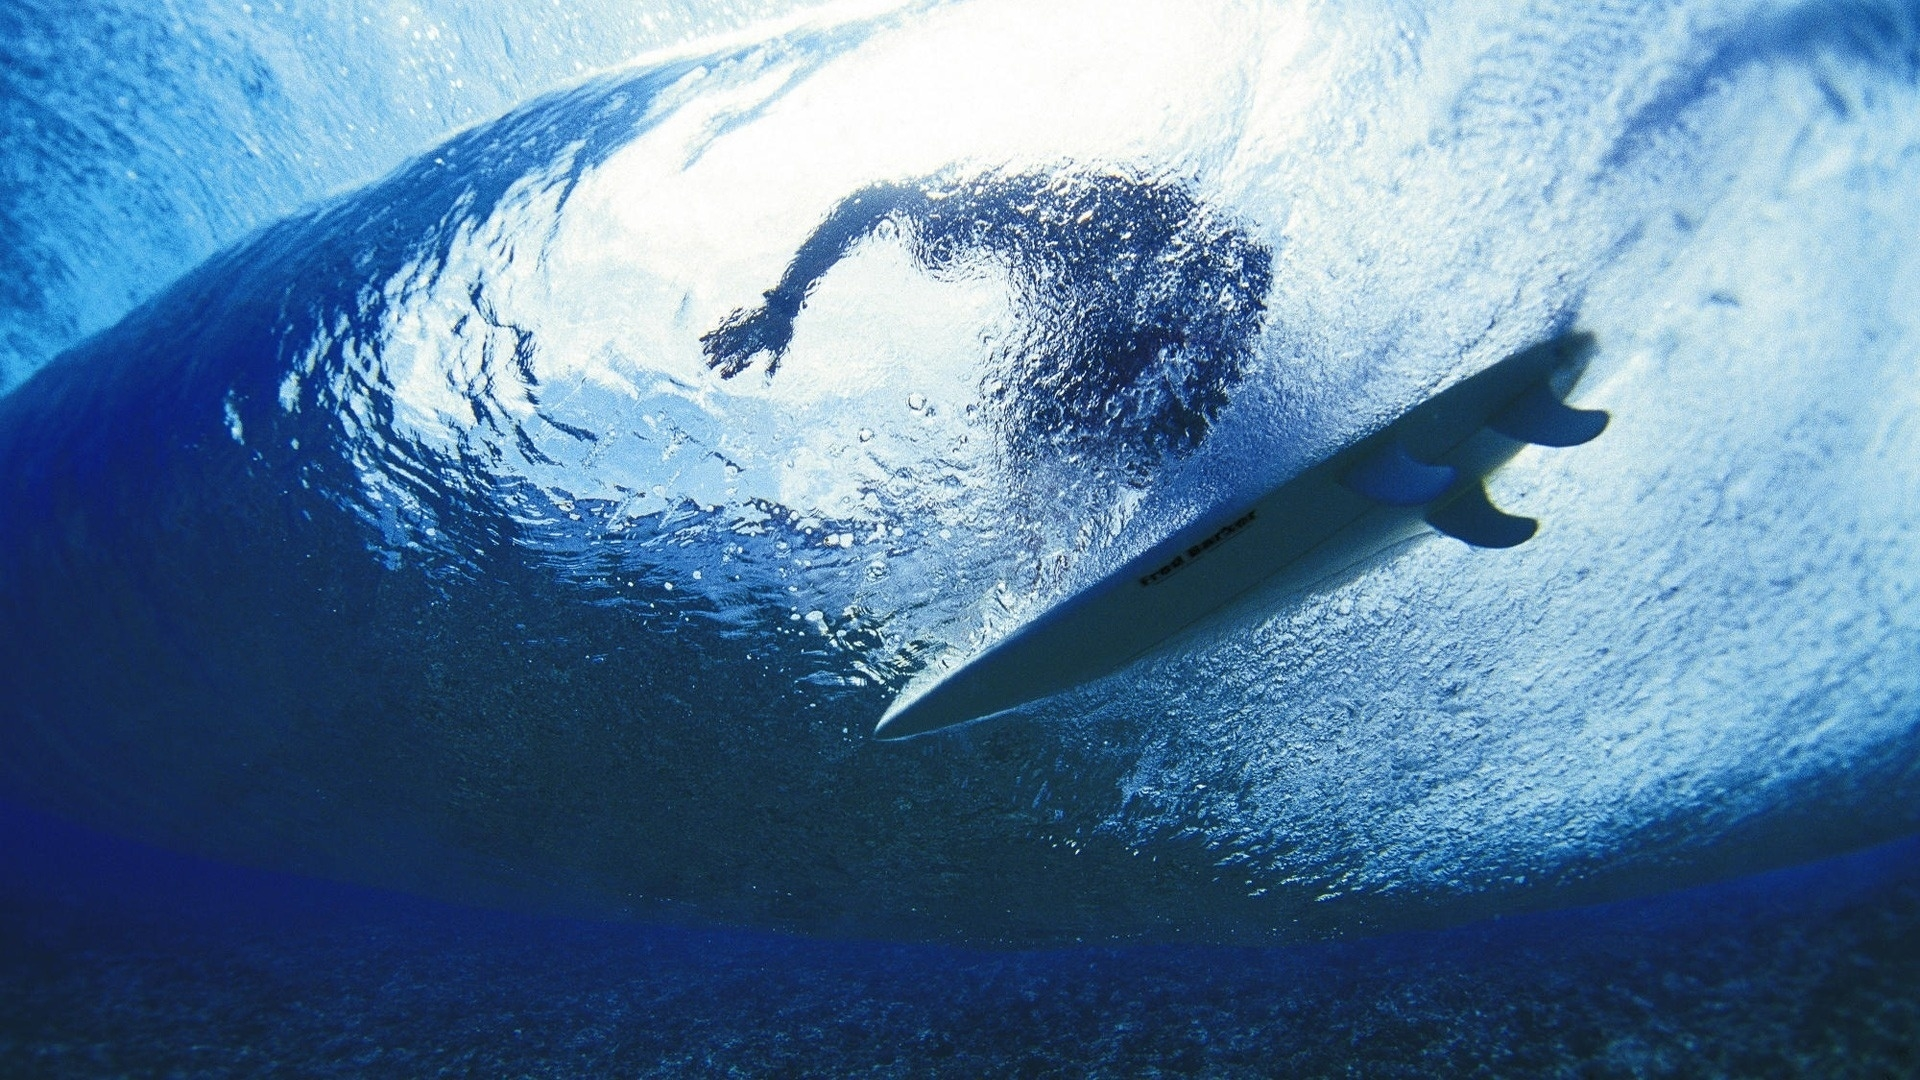 Download Wallpaper 1920x1080 Surfing Surfer Water Depth Full HD 1920x1080